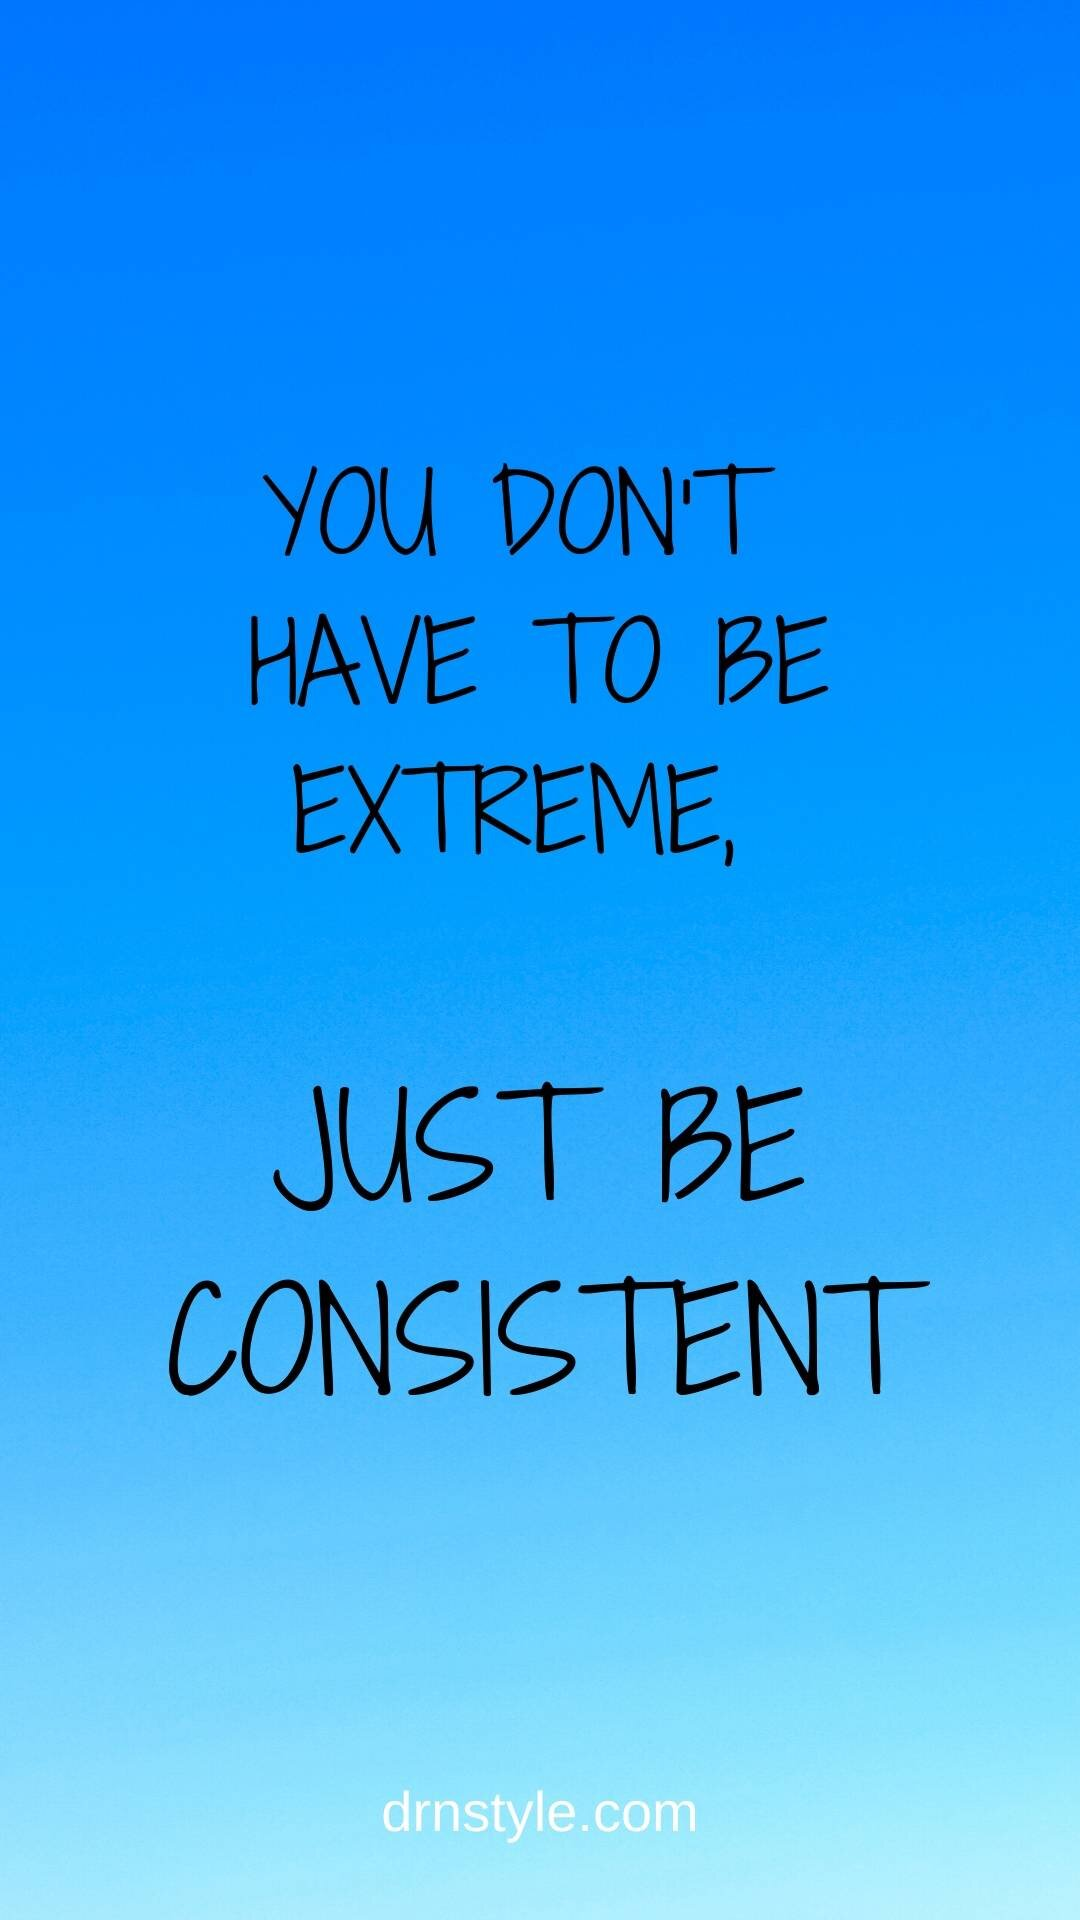 You don't have to be extreme. Just be consistent.